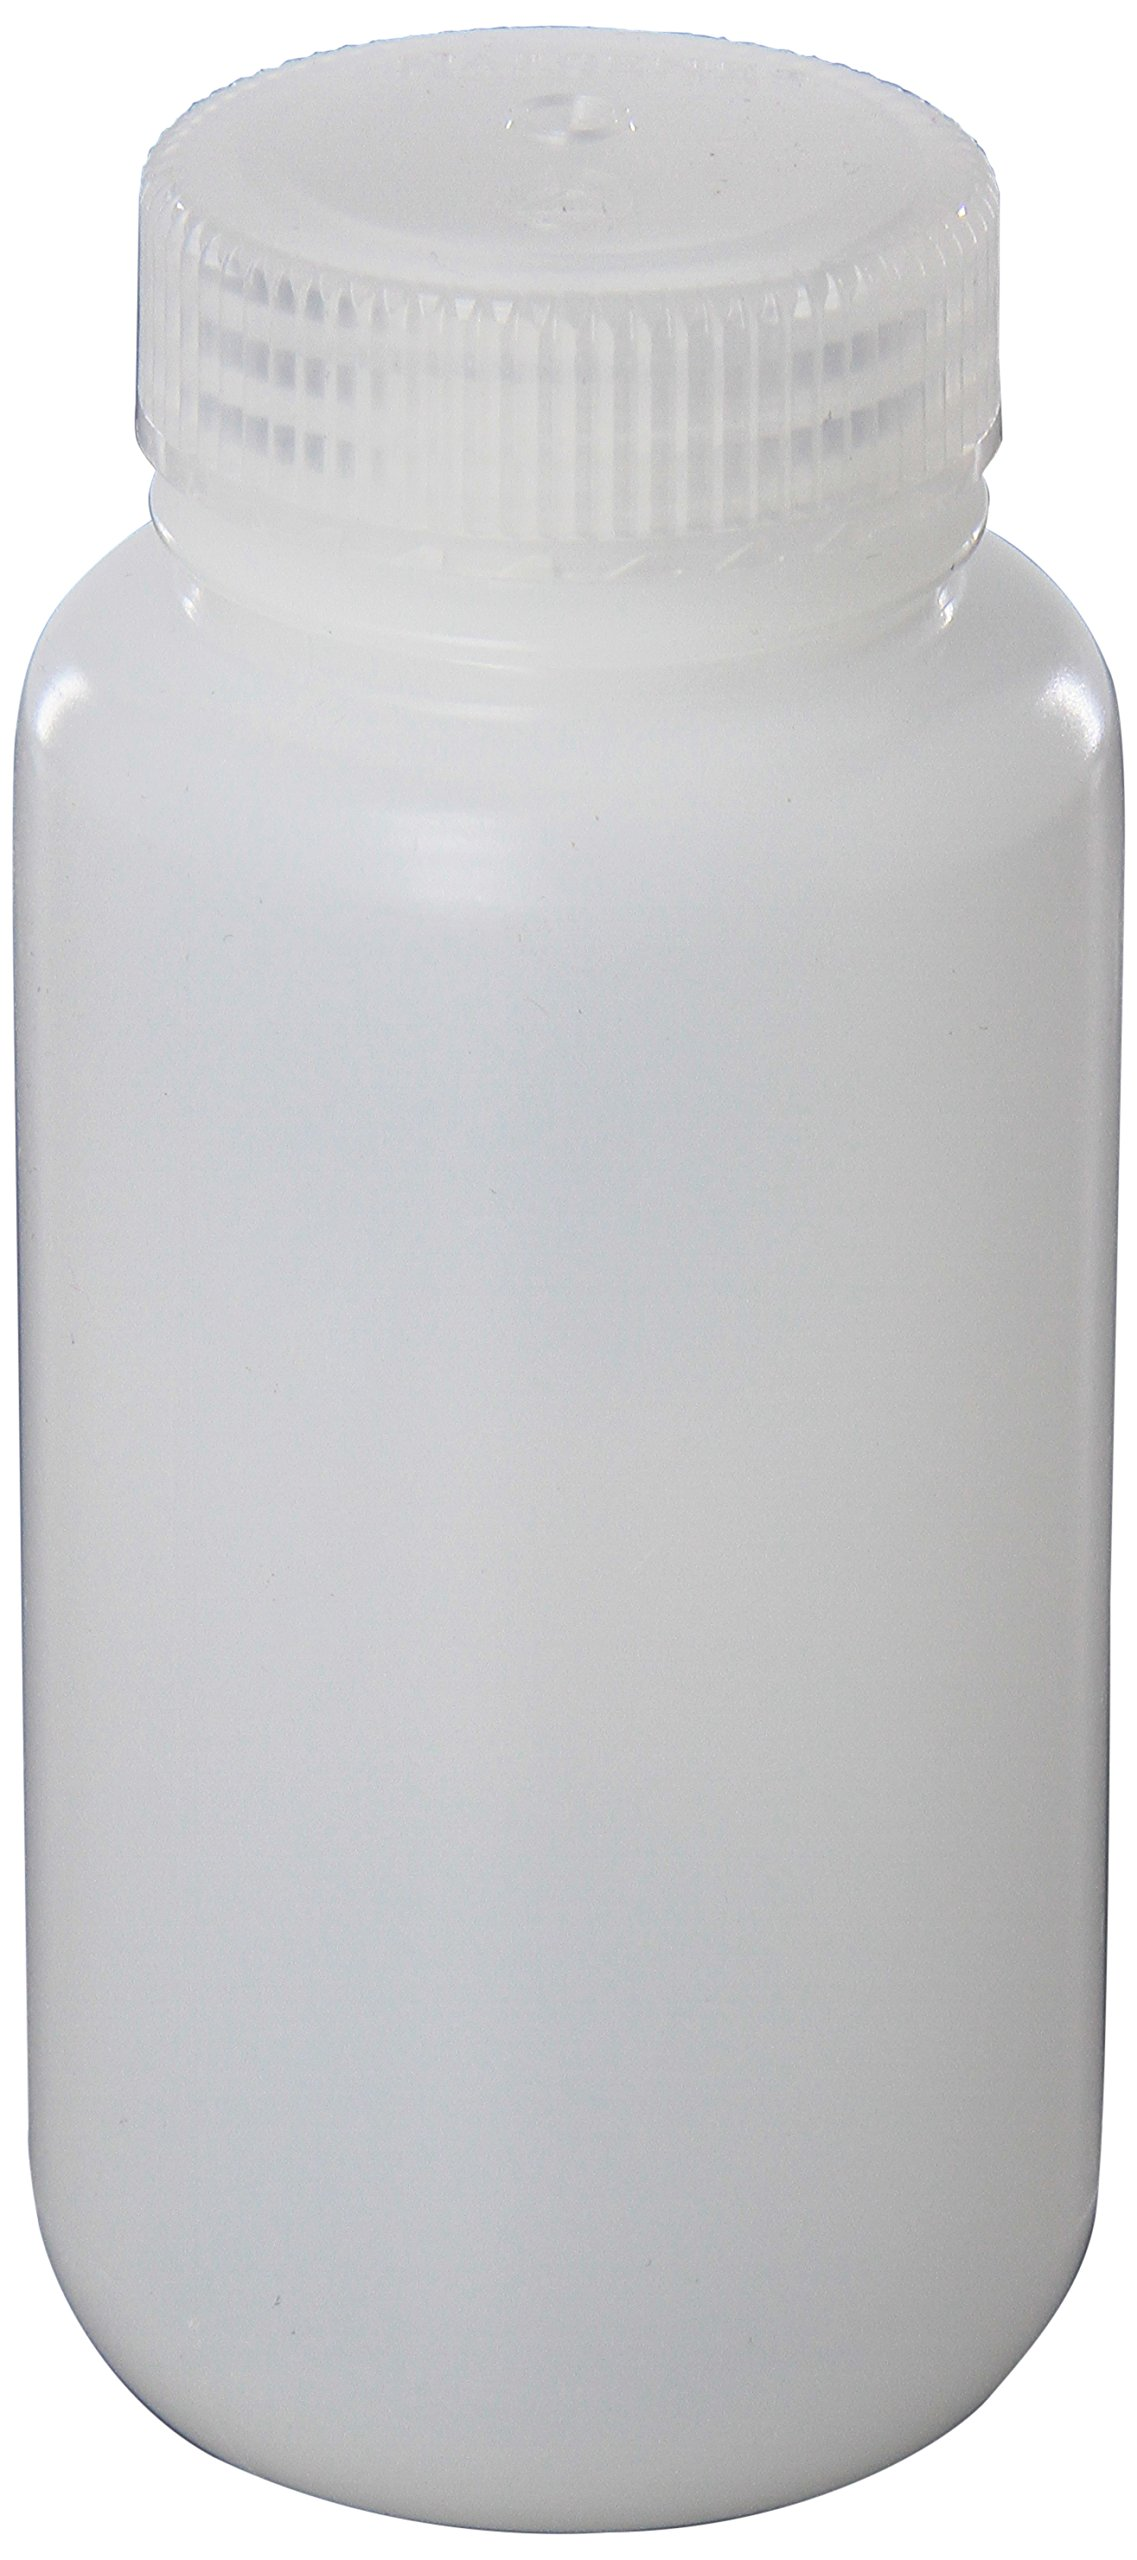 Nalgene HDPE Wide Mouth Round Container, 8 Oz